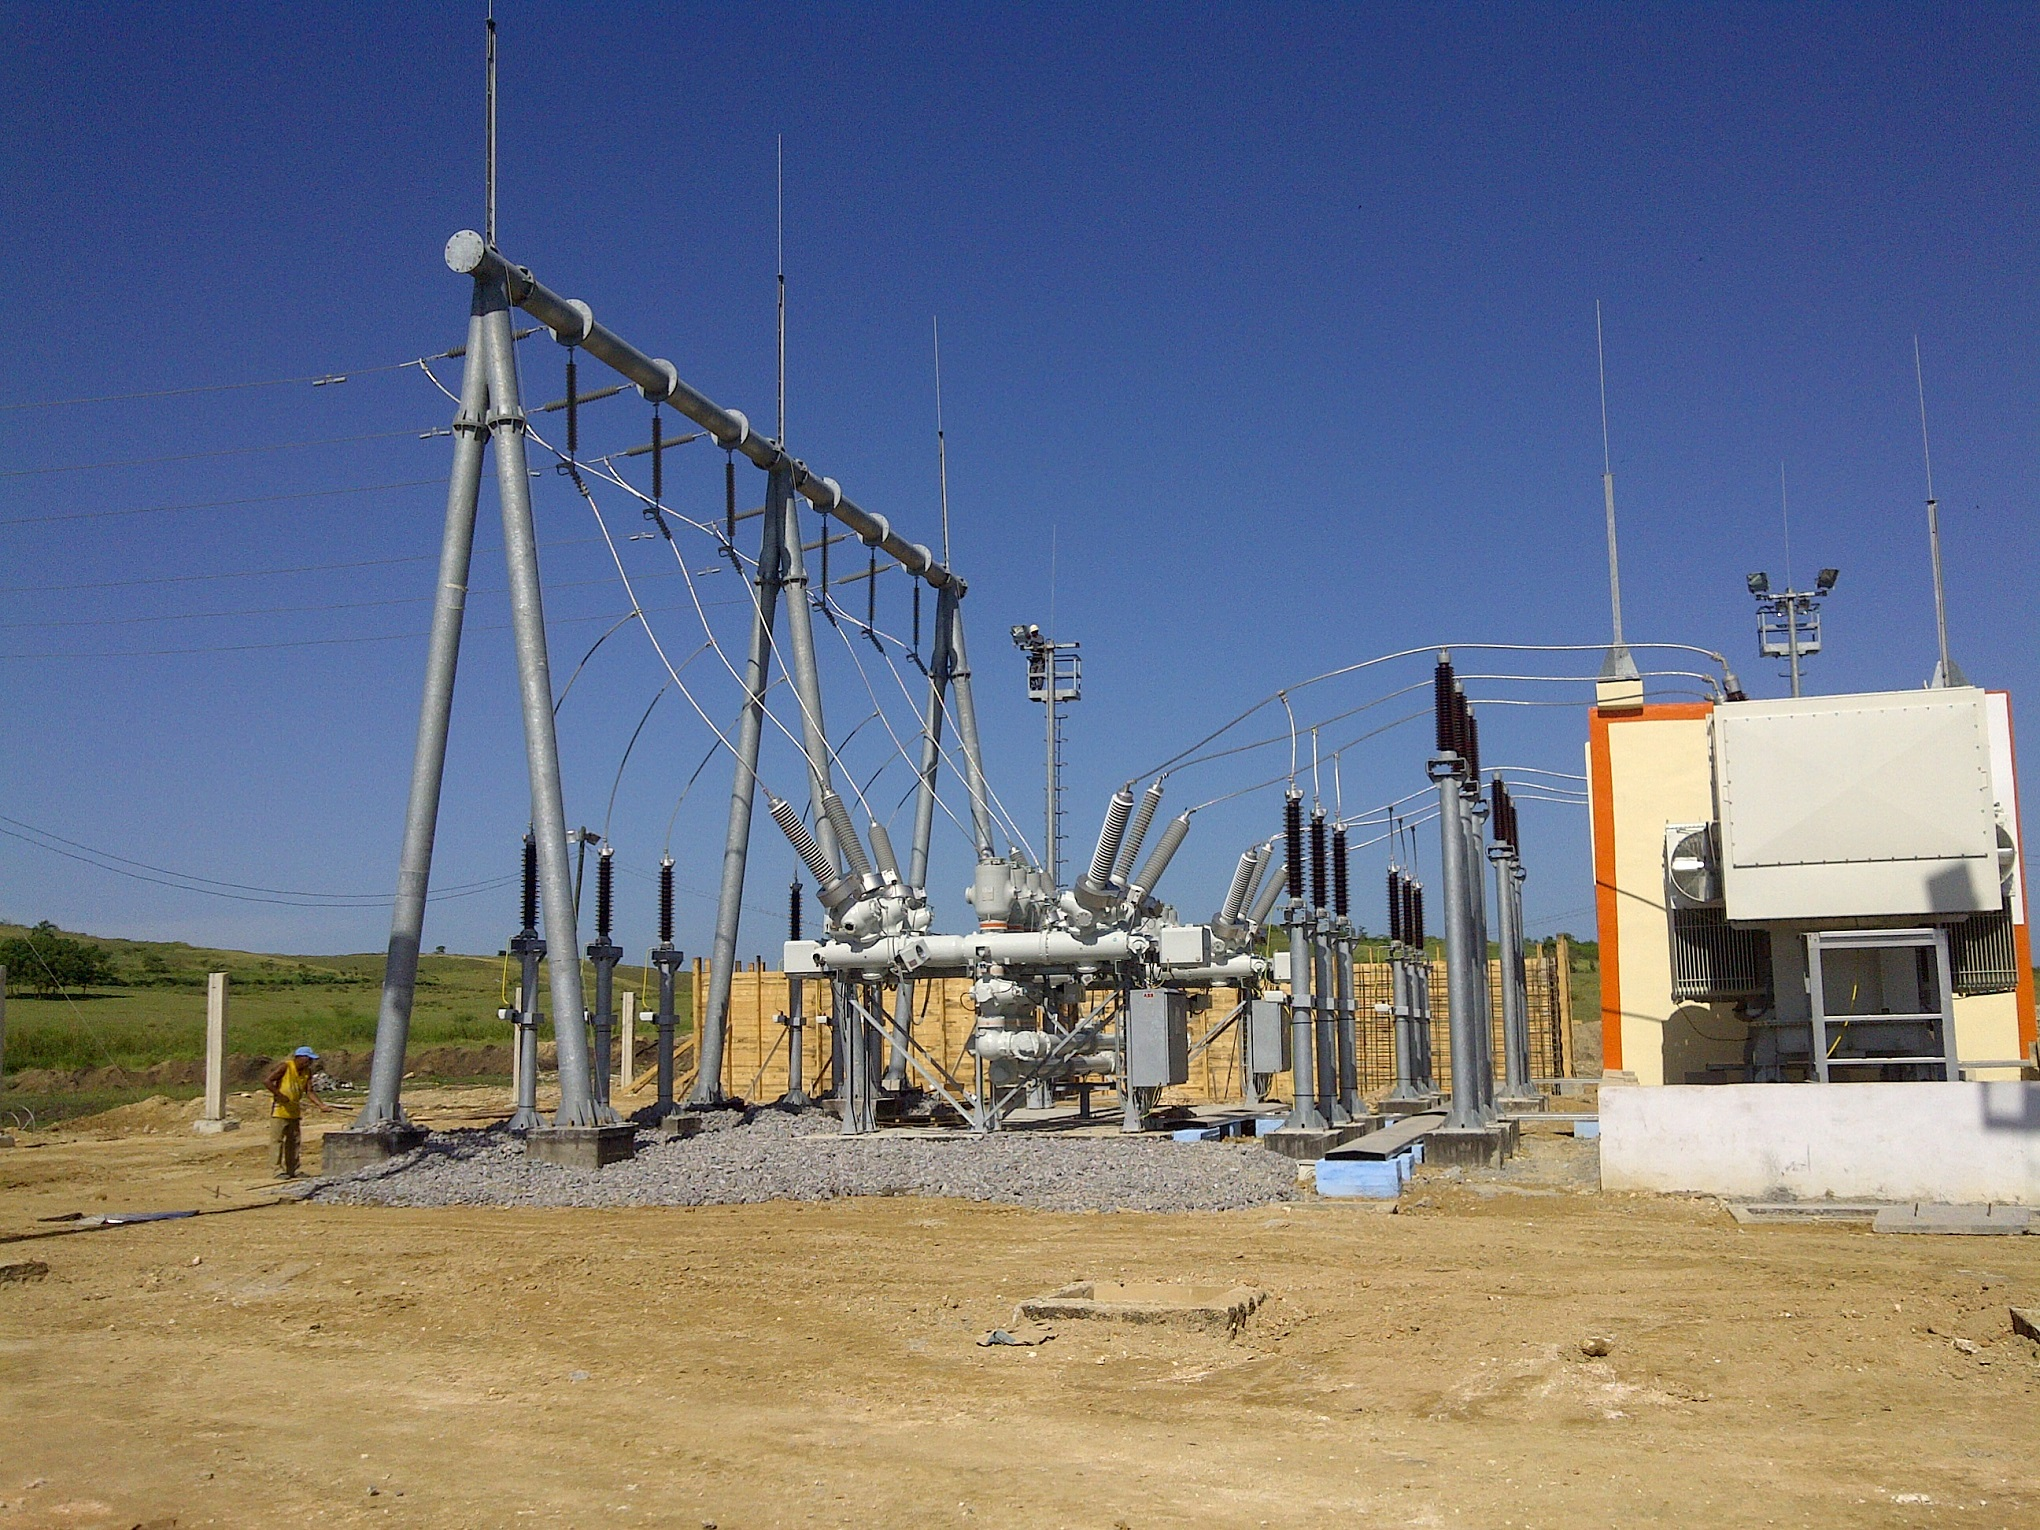 Electrical substation Facts for Kids